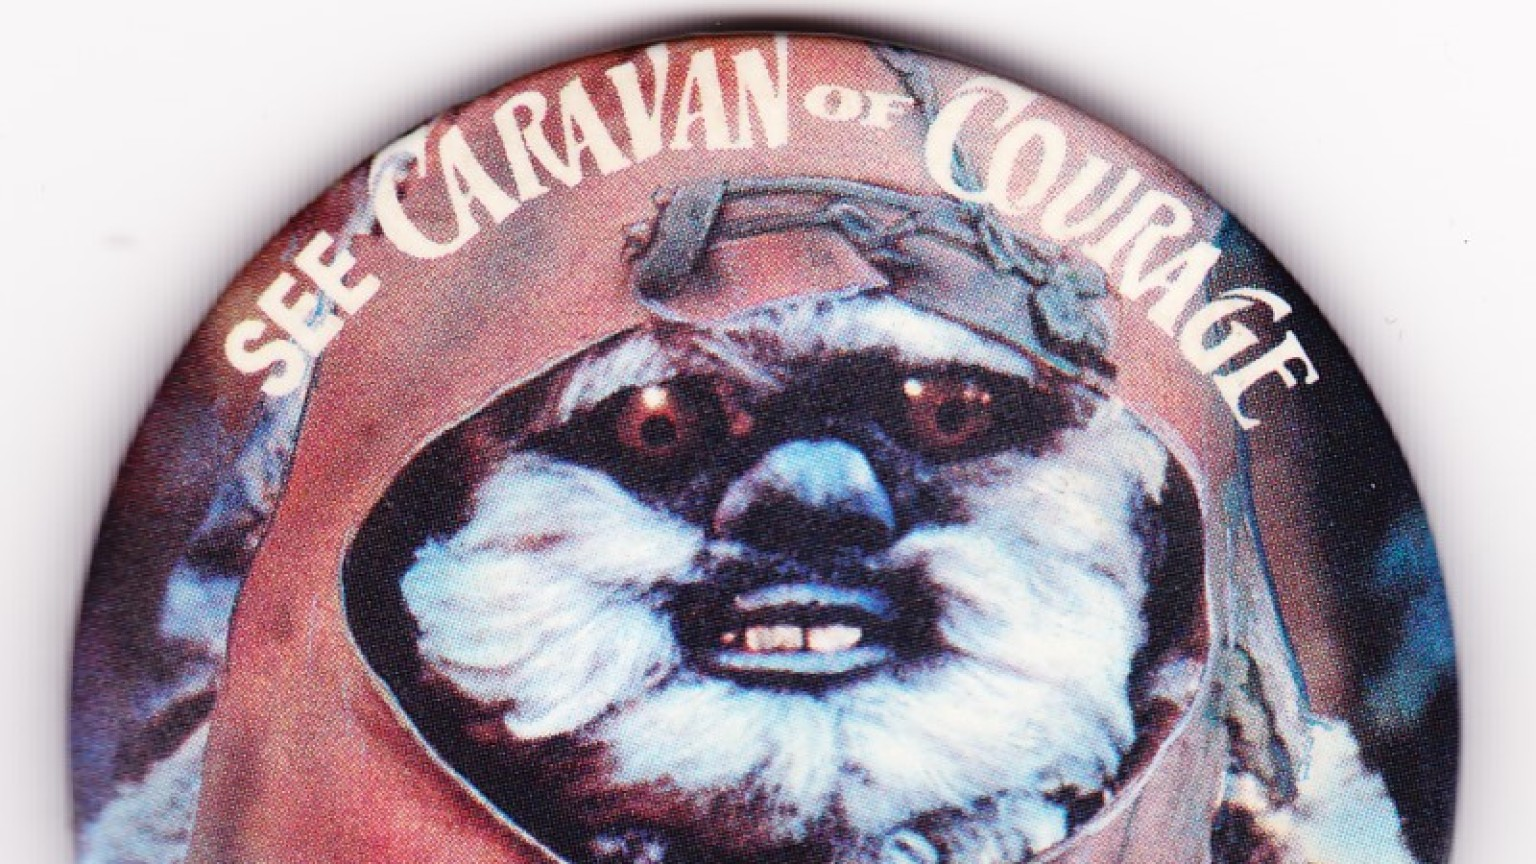 Caravan of Courage button